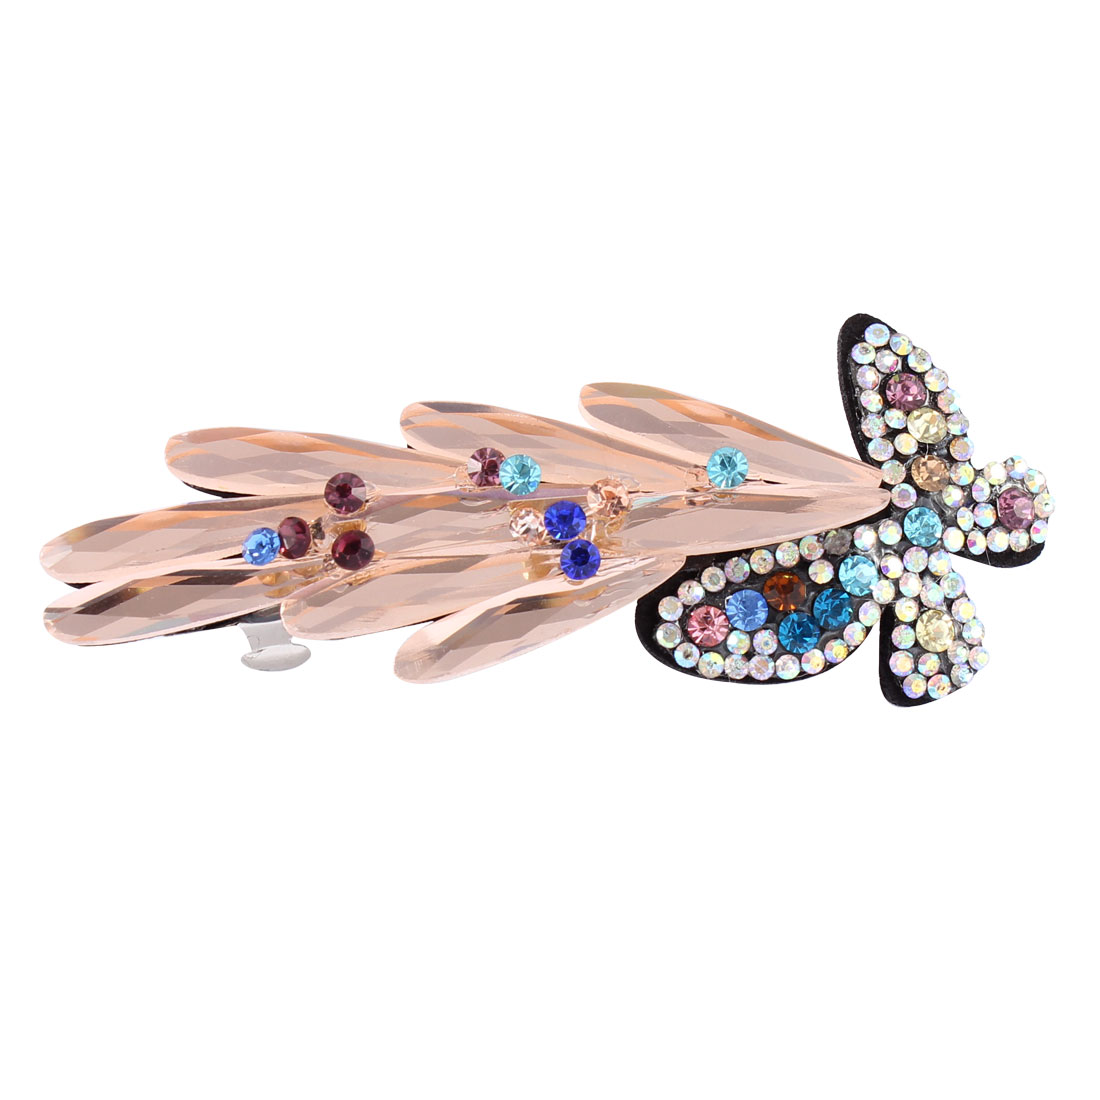 Lady Faux Crystal Rhinestone Decor Butterfly Shape Hair Clip Barrette Hairpin Off White